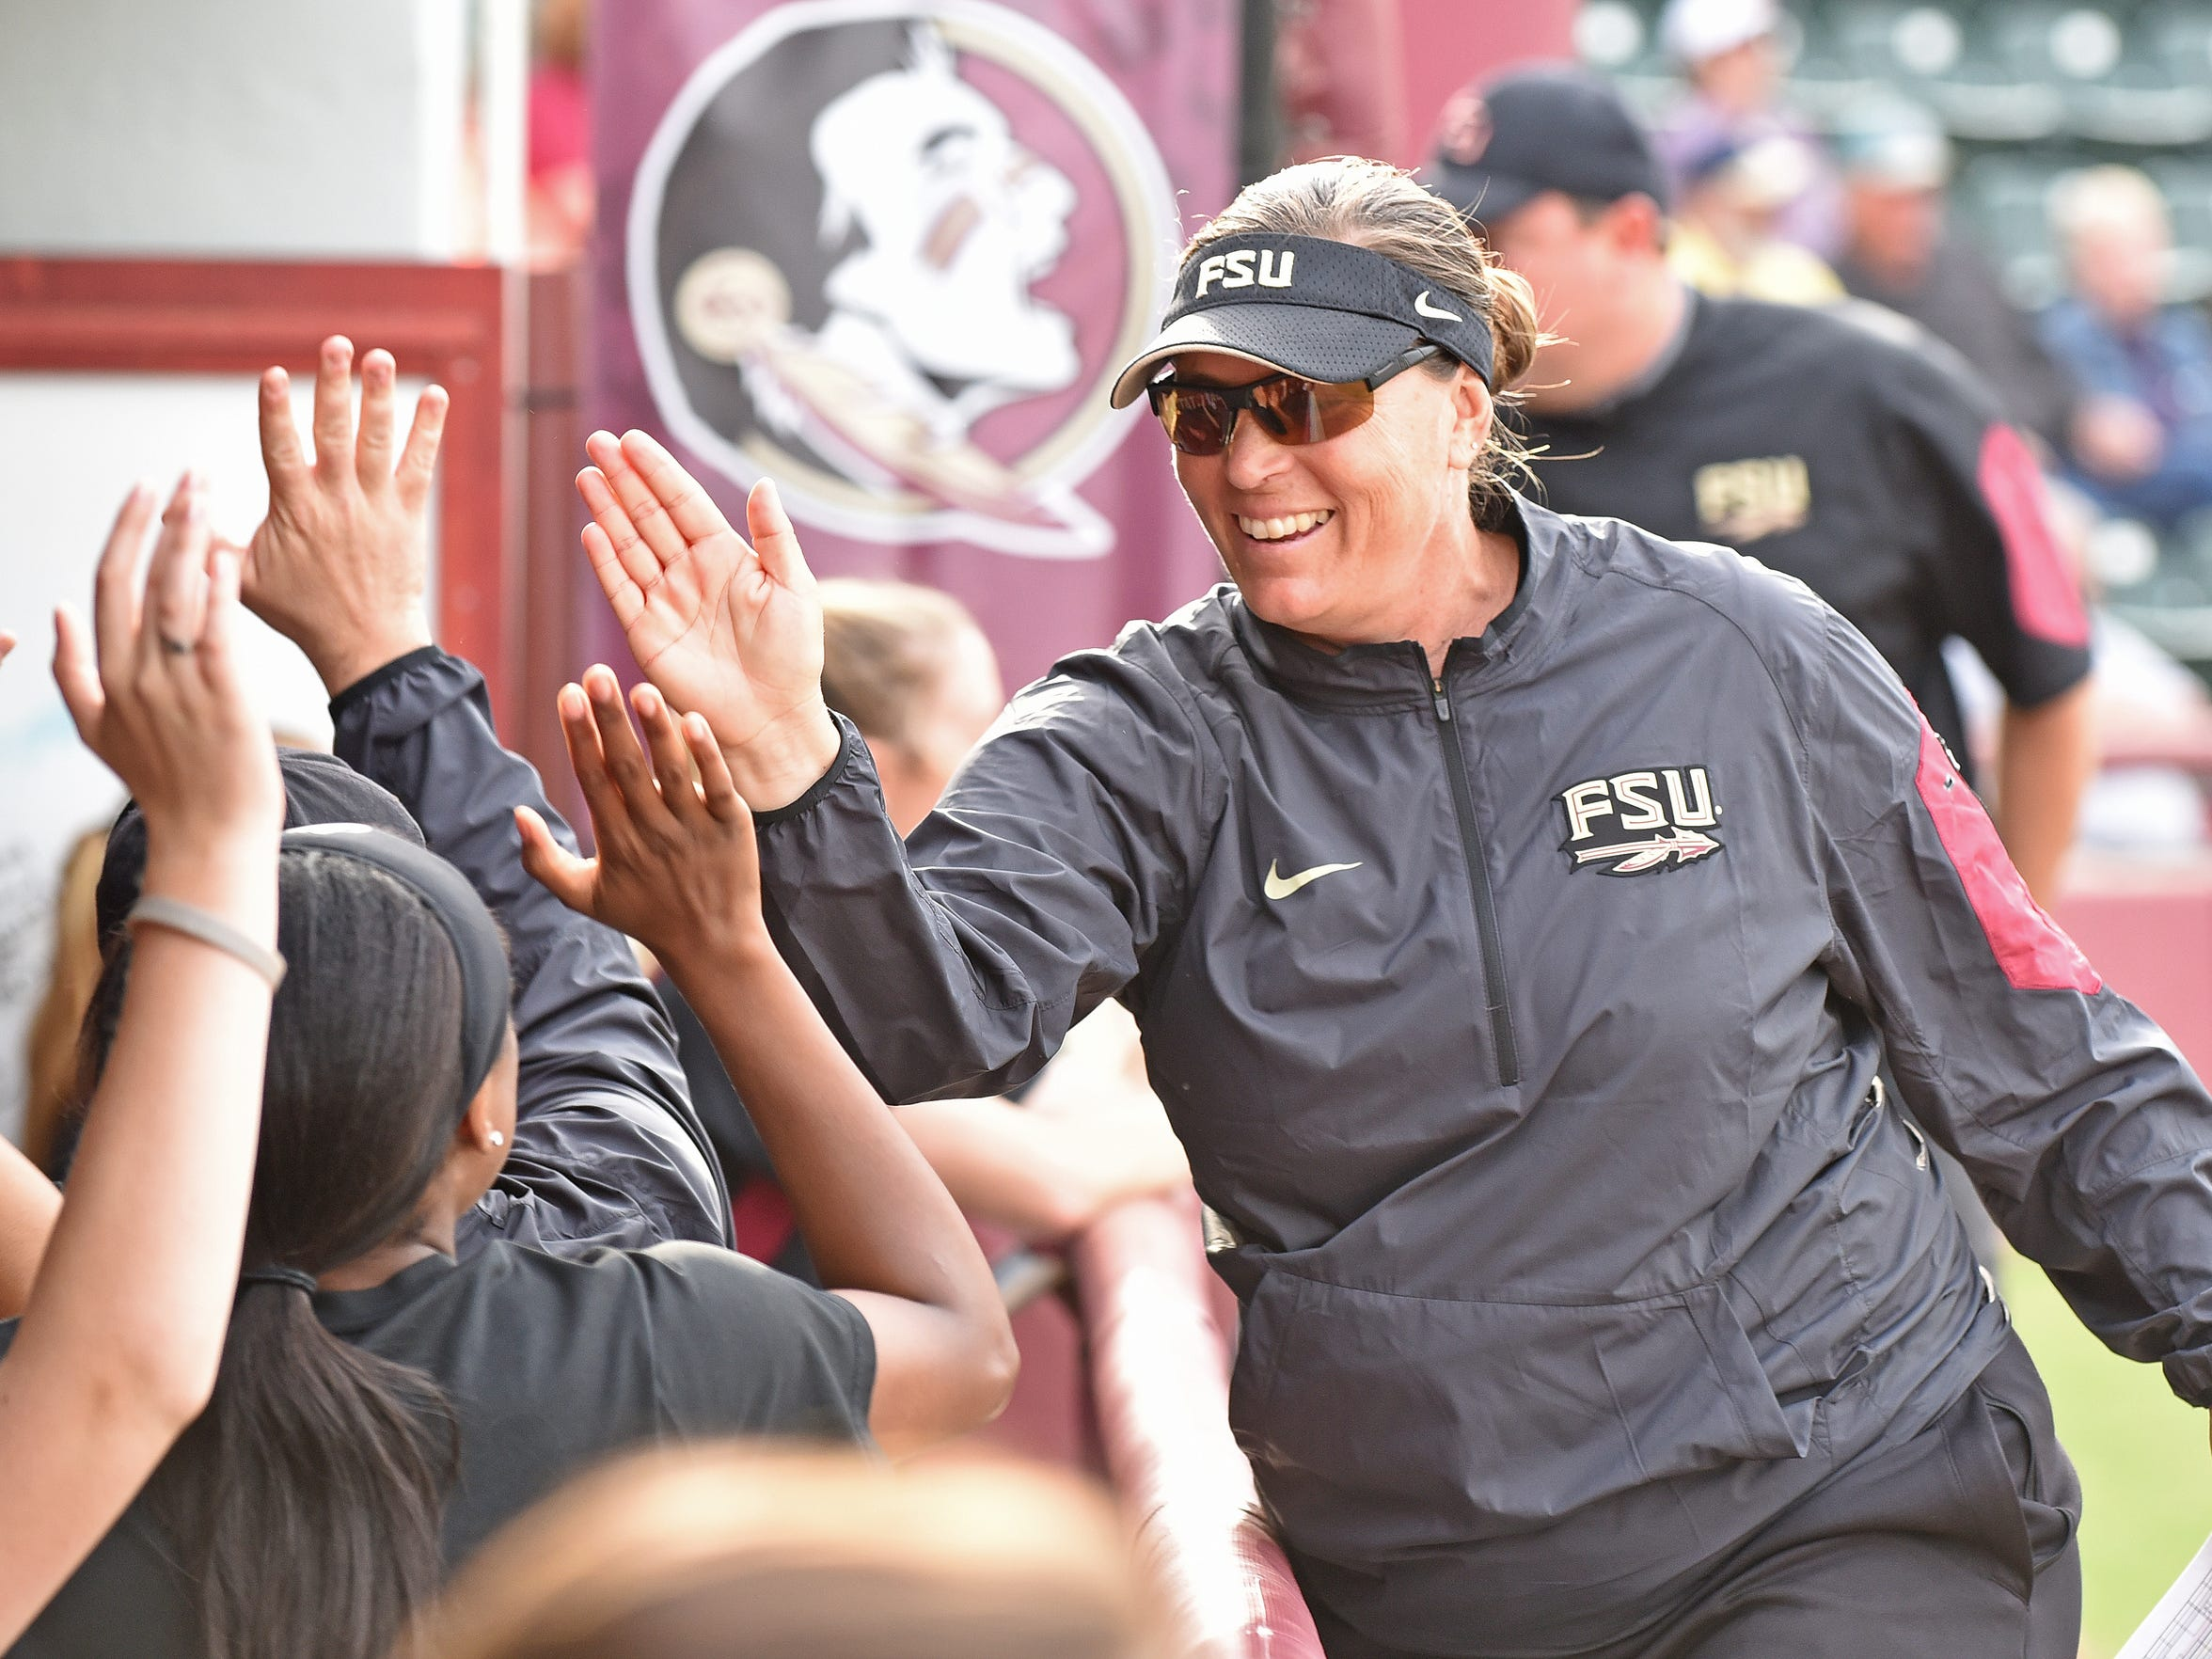 Highly regarded as one of college softball's greatest coaches, head coach Lonni Alameda has imprinted her mark on FSU athletics.